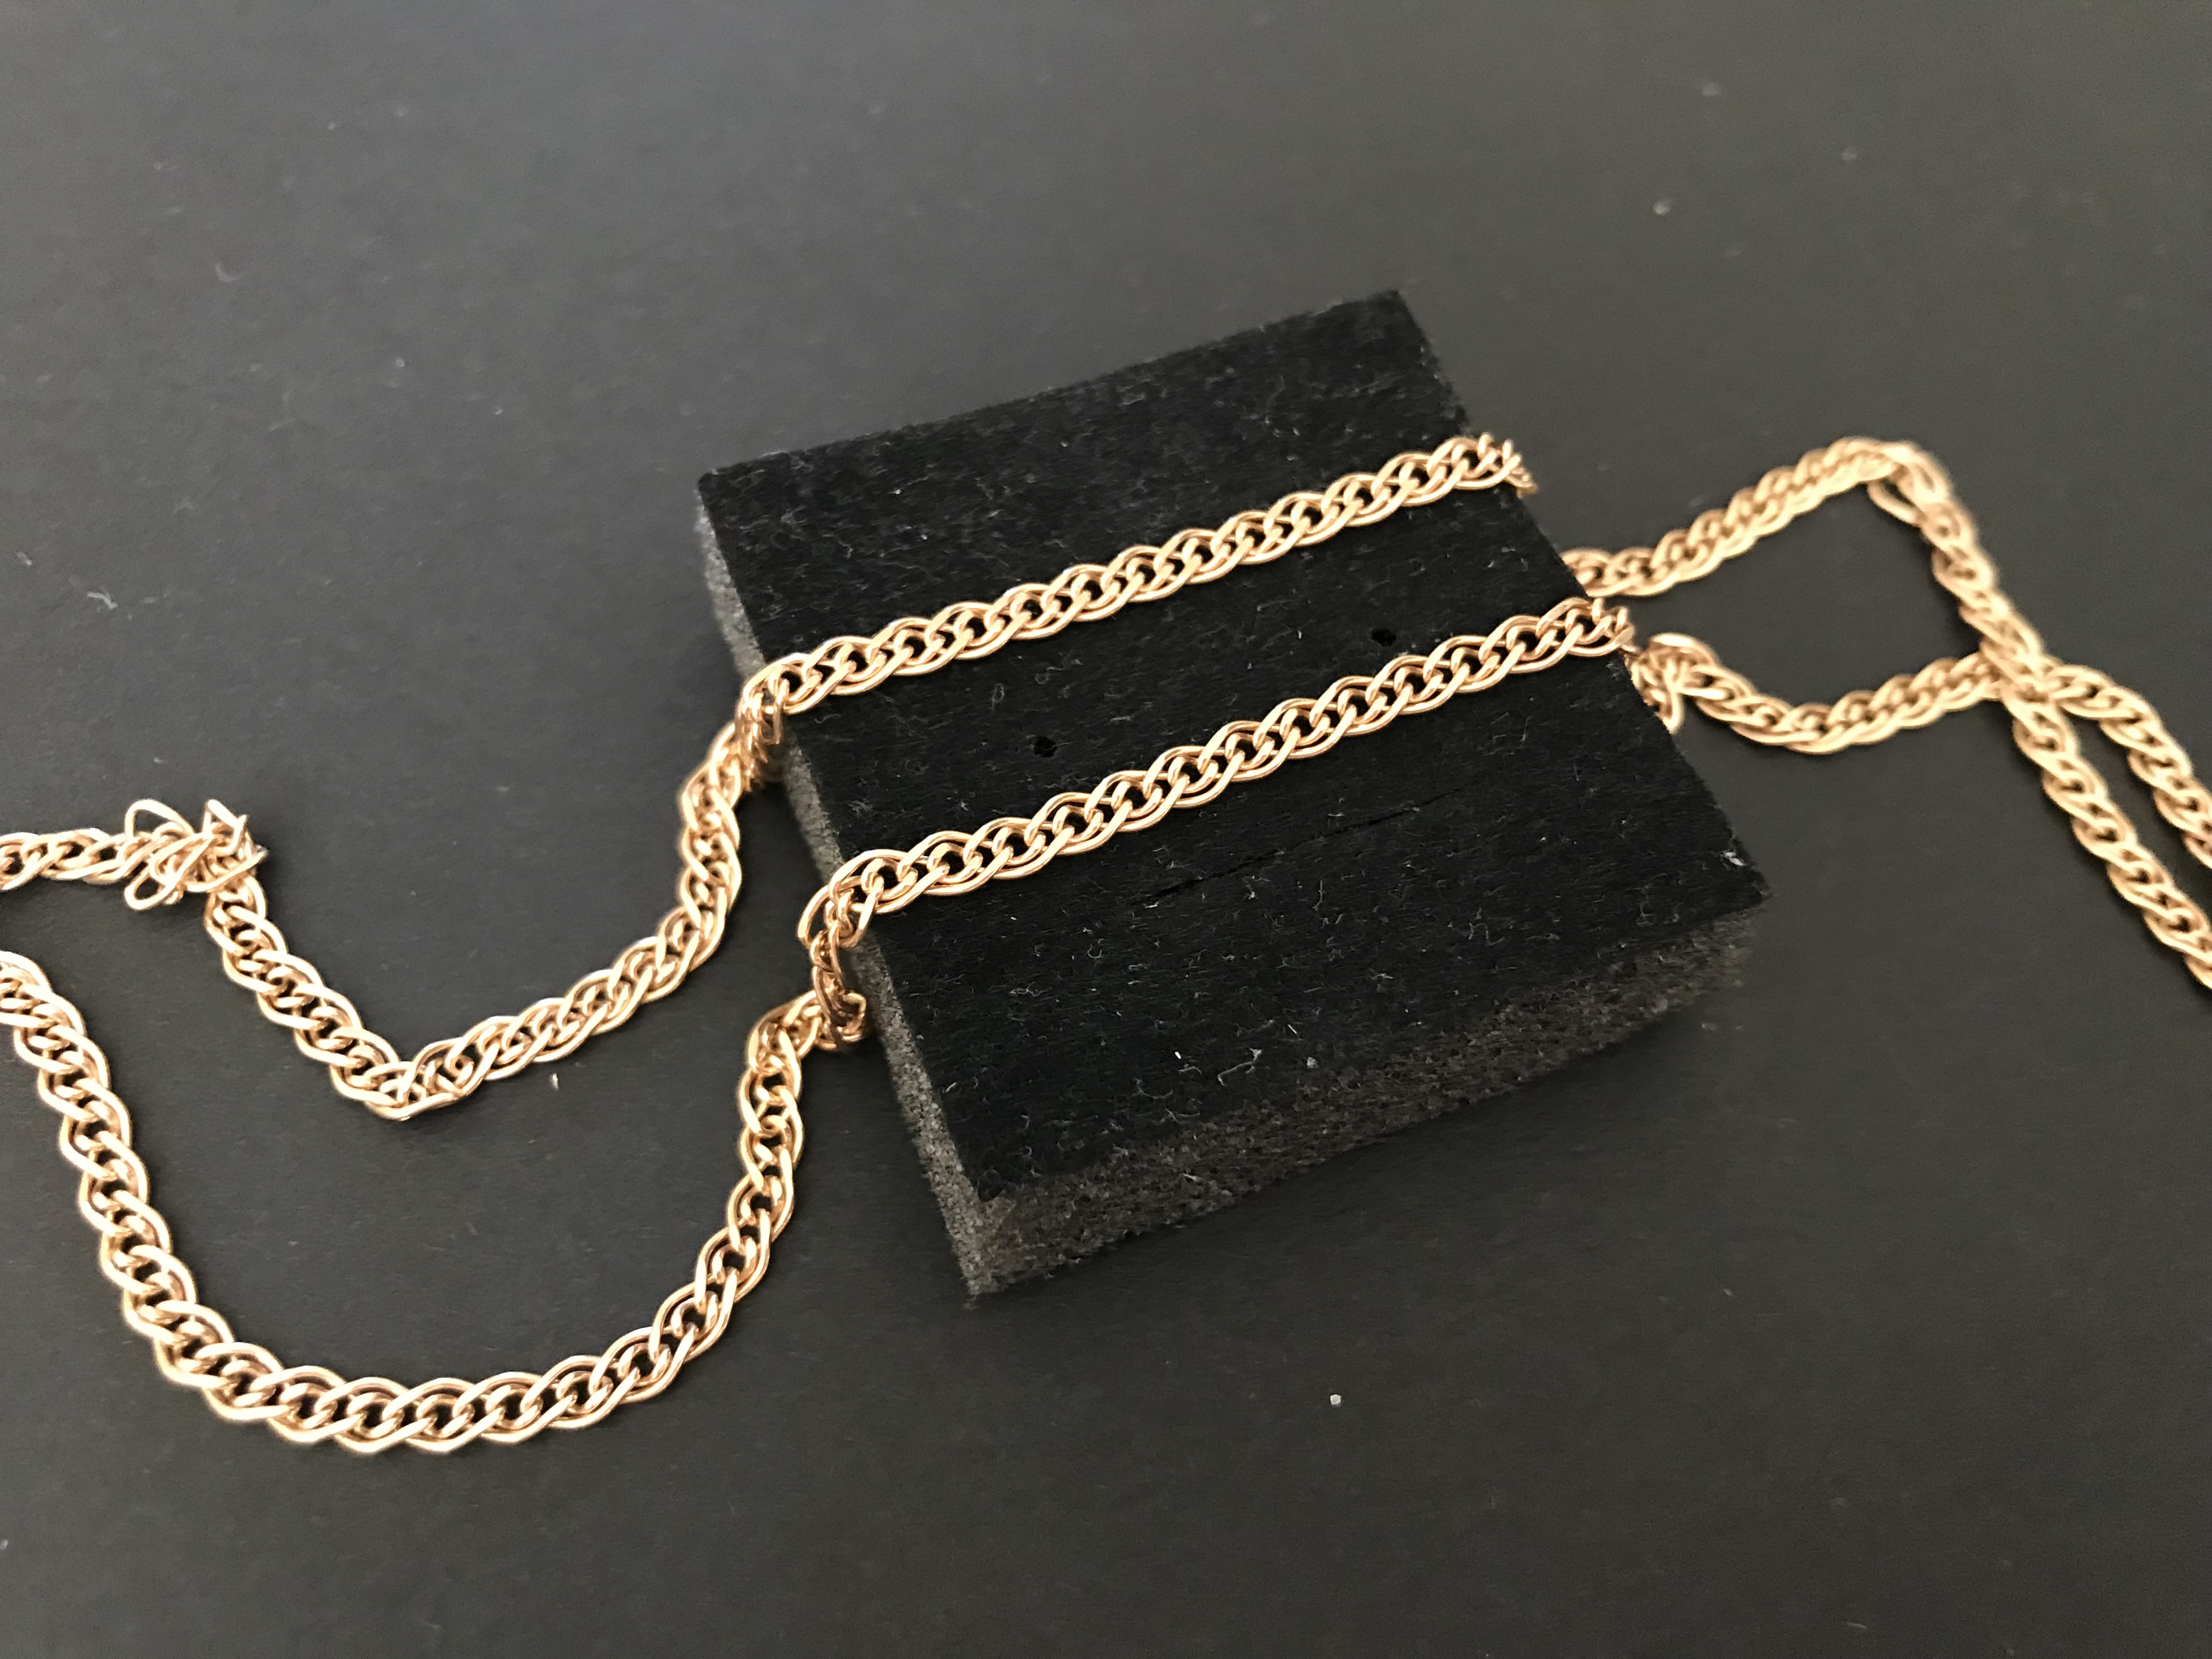 14ct Rose Gold Chain 4.44g – 585 Gold UK